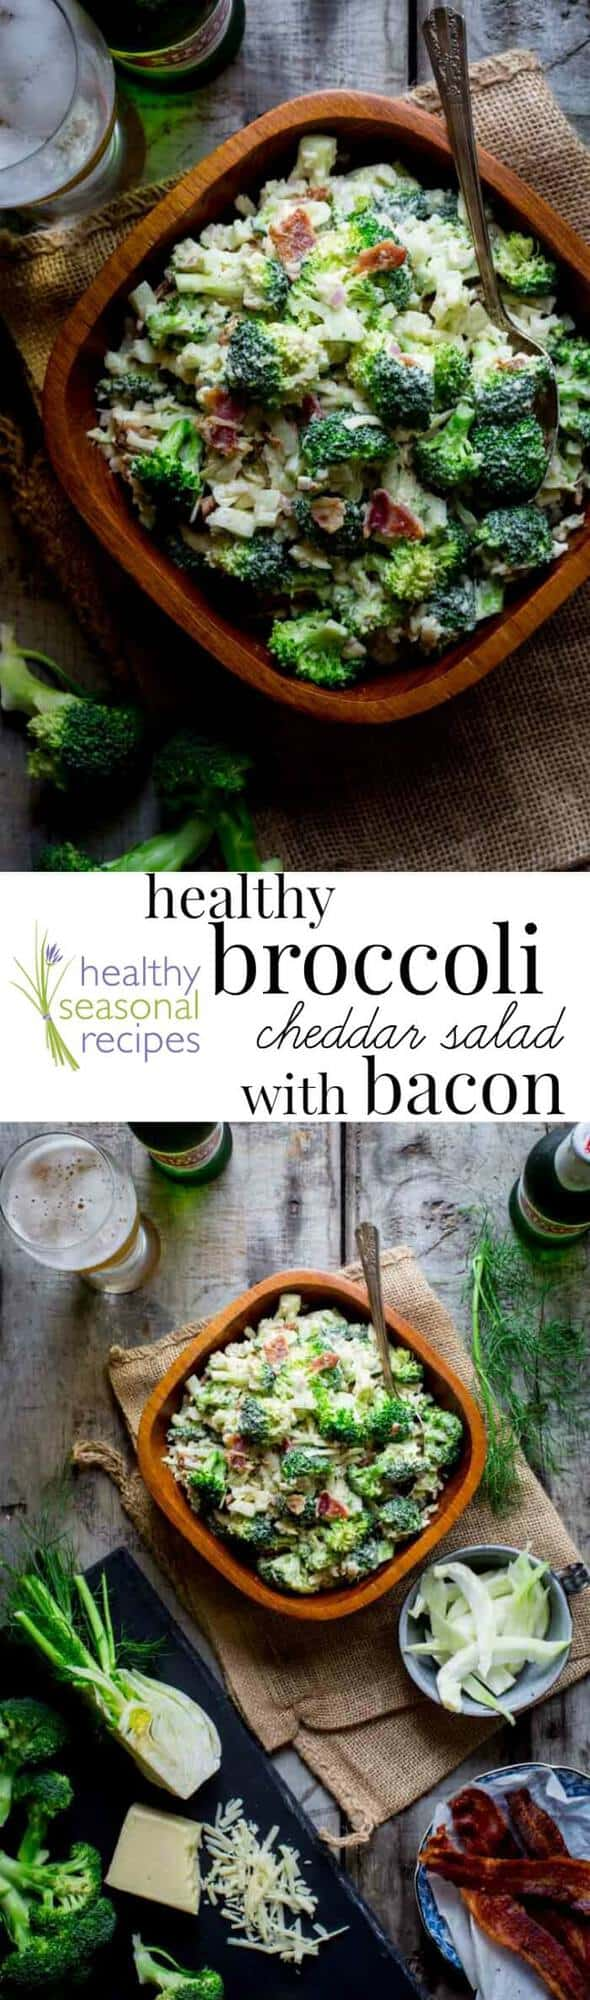 You will probably want to make a double batch because everyone will want seconds of this Broccoli Salad Recipe! It's a healthier version of the classic version my grandmother made with Bacon, Cheddar and creamy dressing, but it is still absolutely delicious! #healthyseasonal #cleaneating #lowcarb #healthy #broccoli #broccolisalad #picnic #potluck #covereddish #barbecue #fourthofjuly